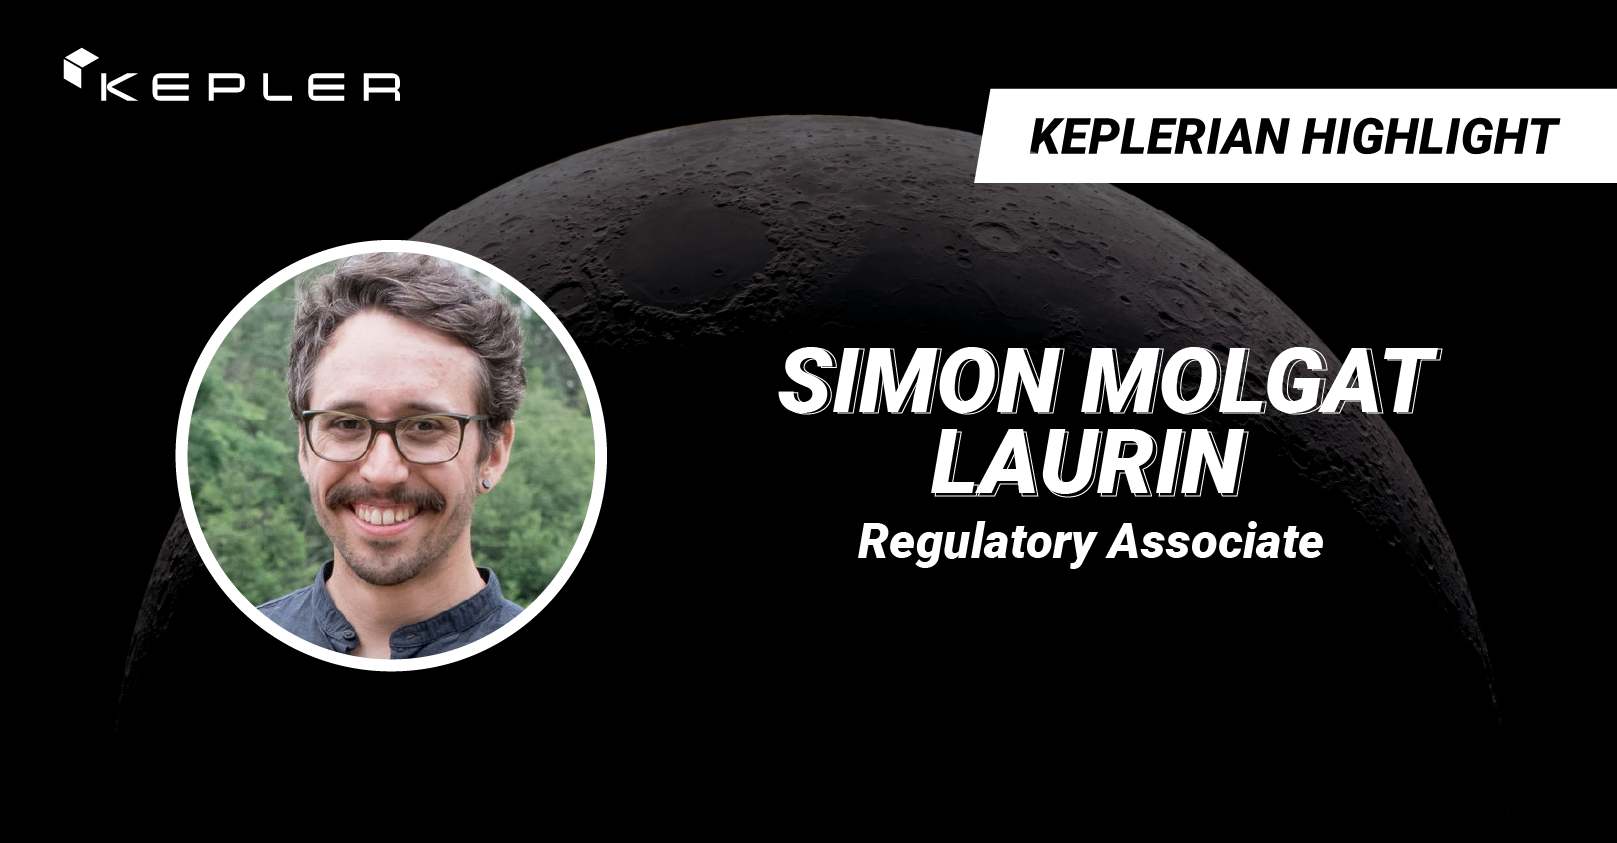 """Background image of the moon's surface with the Kepler logo and text reading """"Keplerian Highlight: Simon Molgat Laurin, Regulatory Associate"""""""